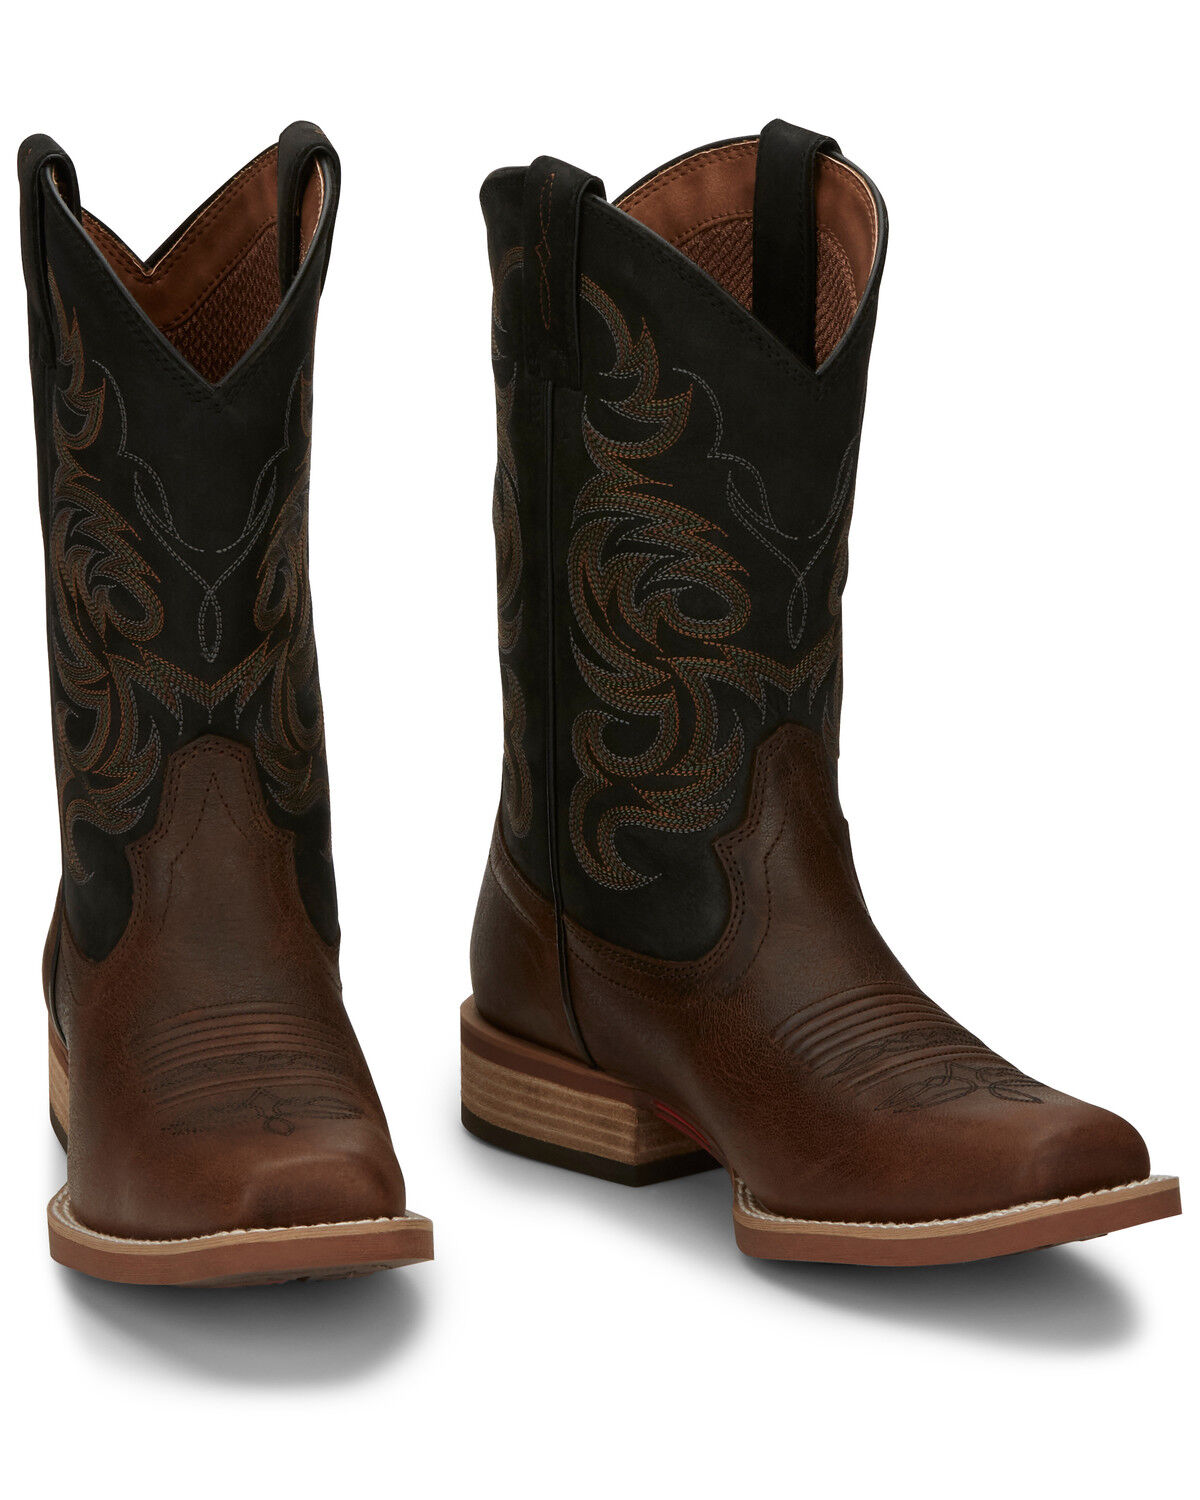 Cowman Brown Western Boots - Square Toe